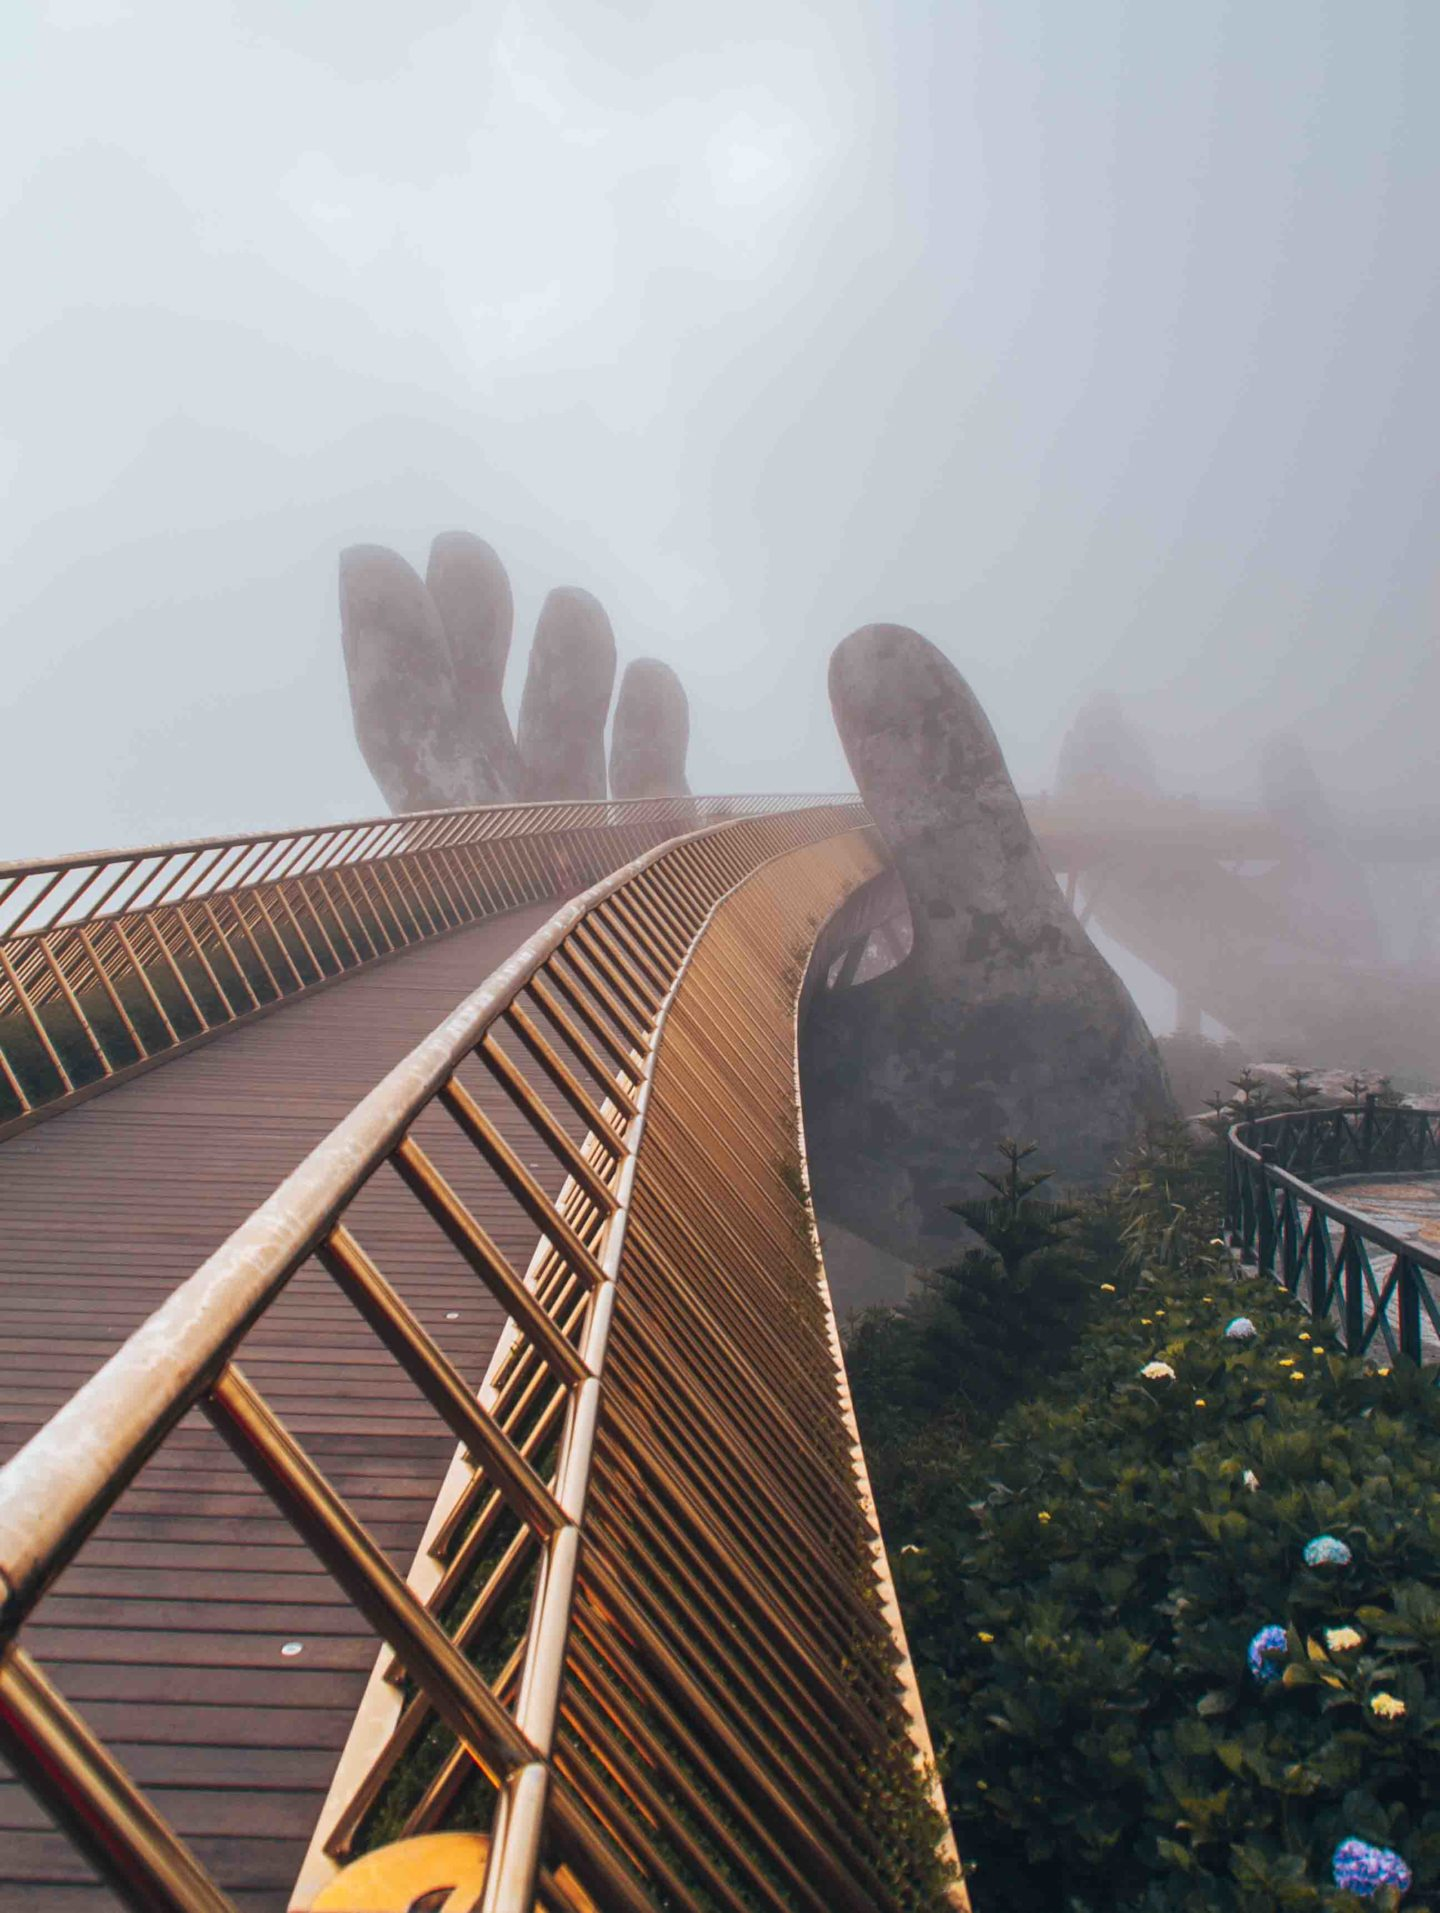 Admire the Golden Bridge by yourself at sunrise in the Ba Na Hills